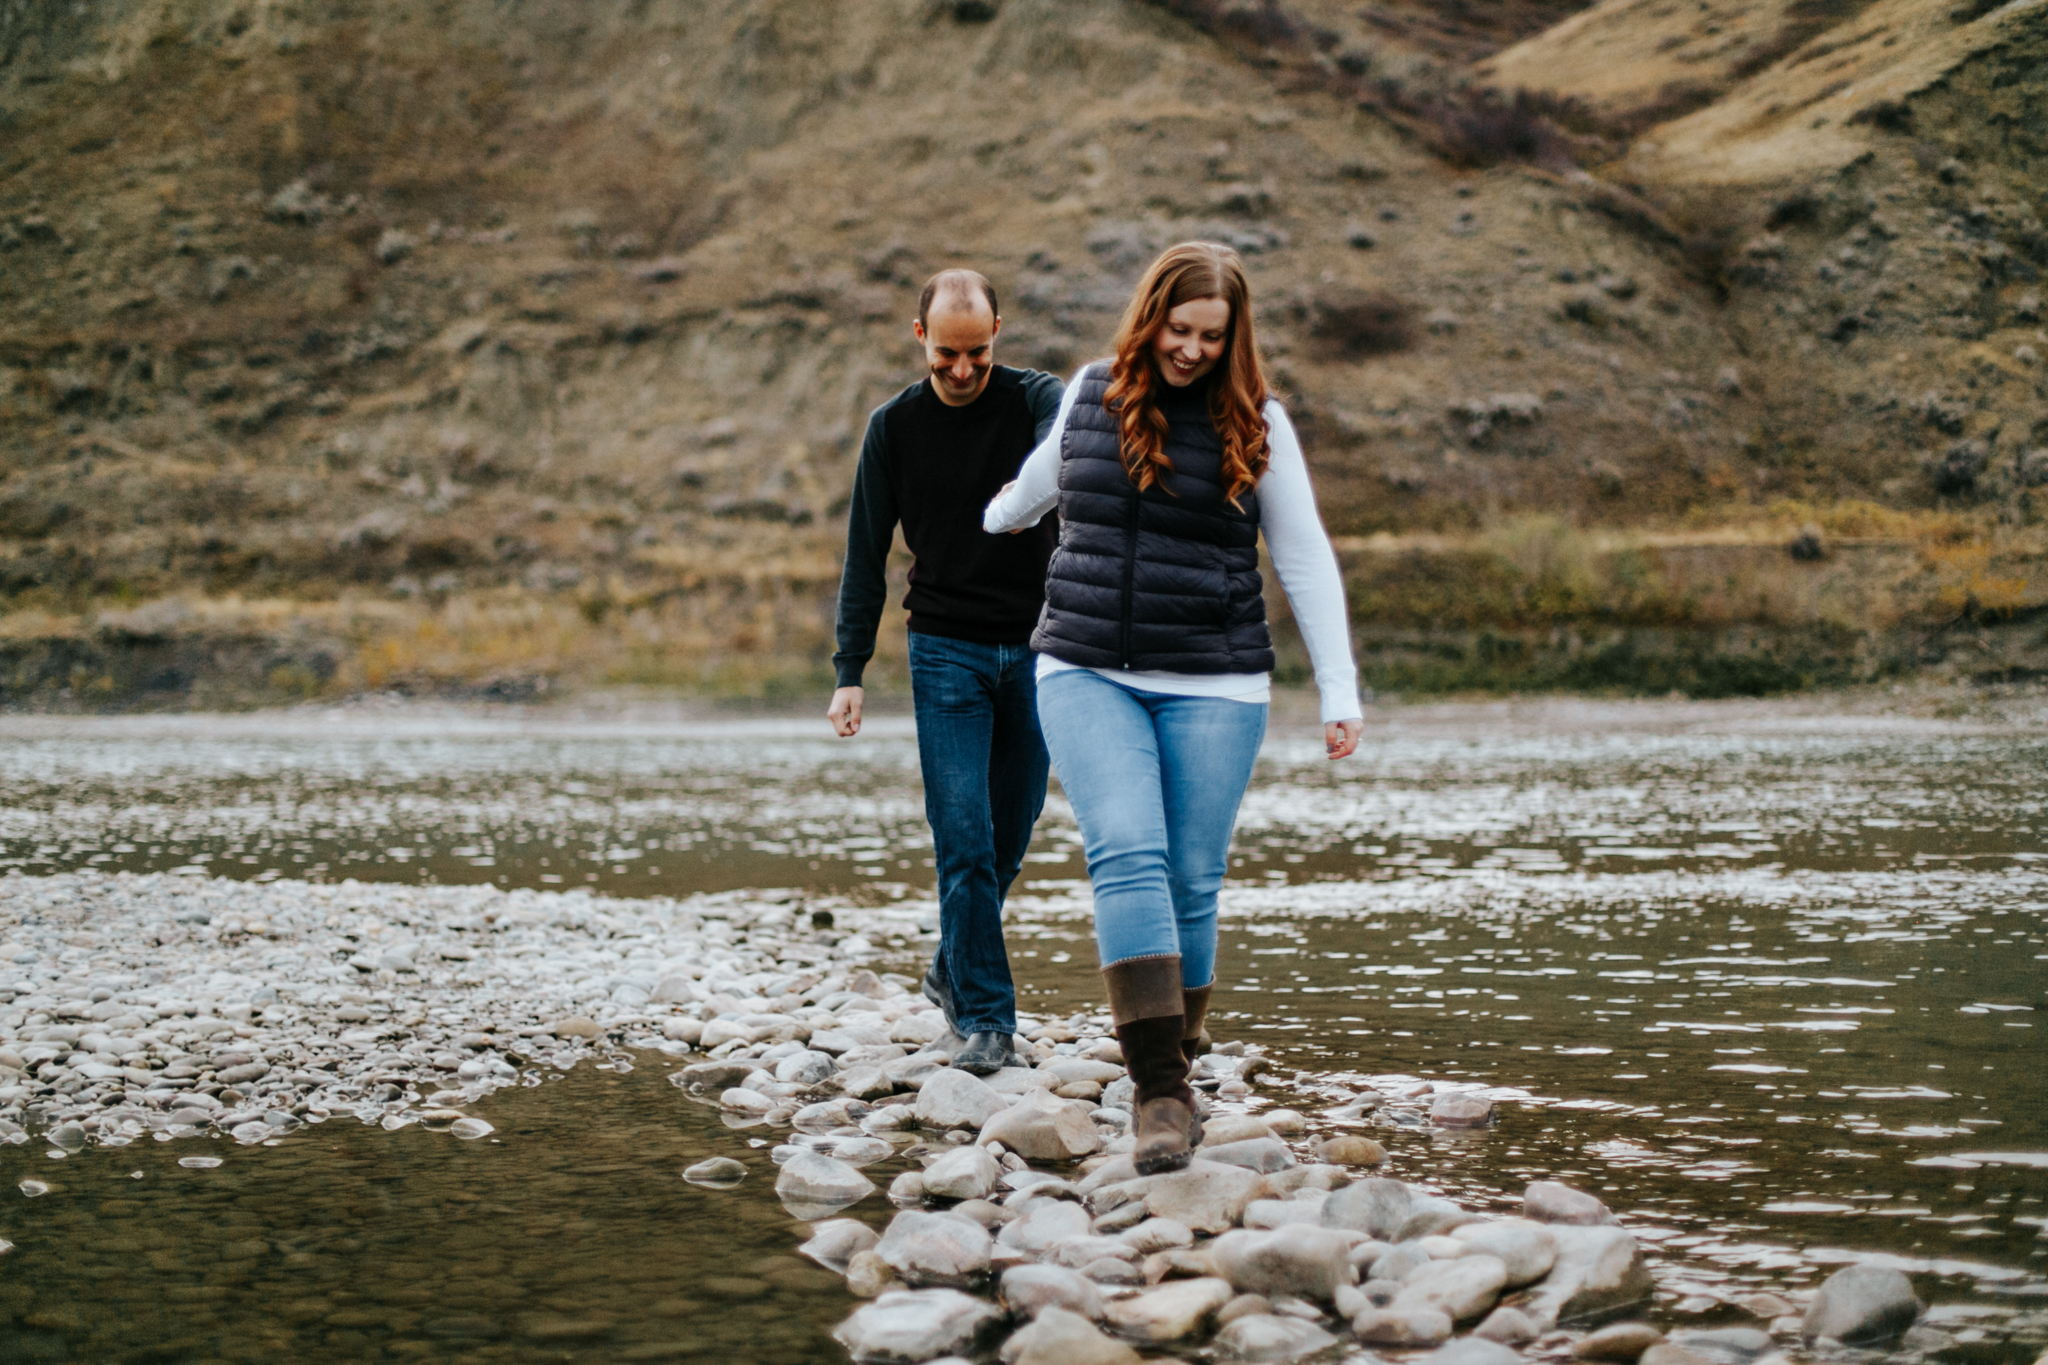 lethbridge-photographer-love-and-be-loved-photography-indian-battle-park-engagement-mike-carmel-photo-image-picture-49.jpg